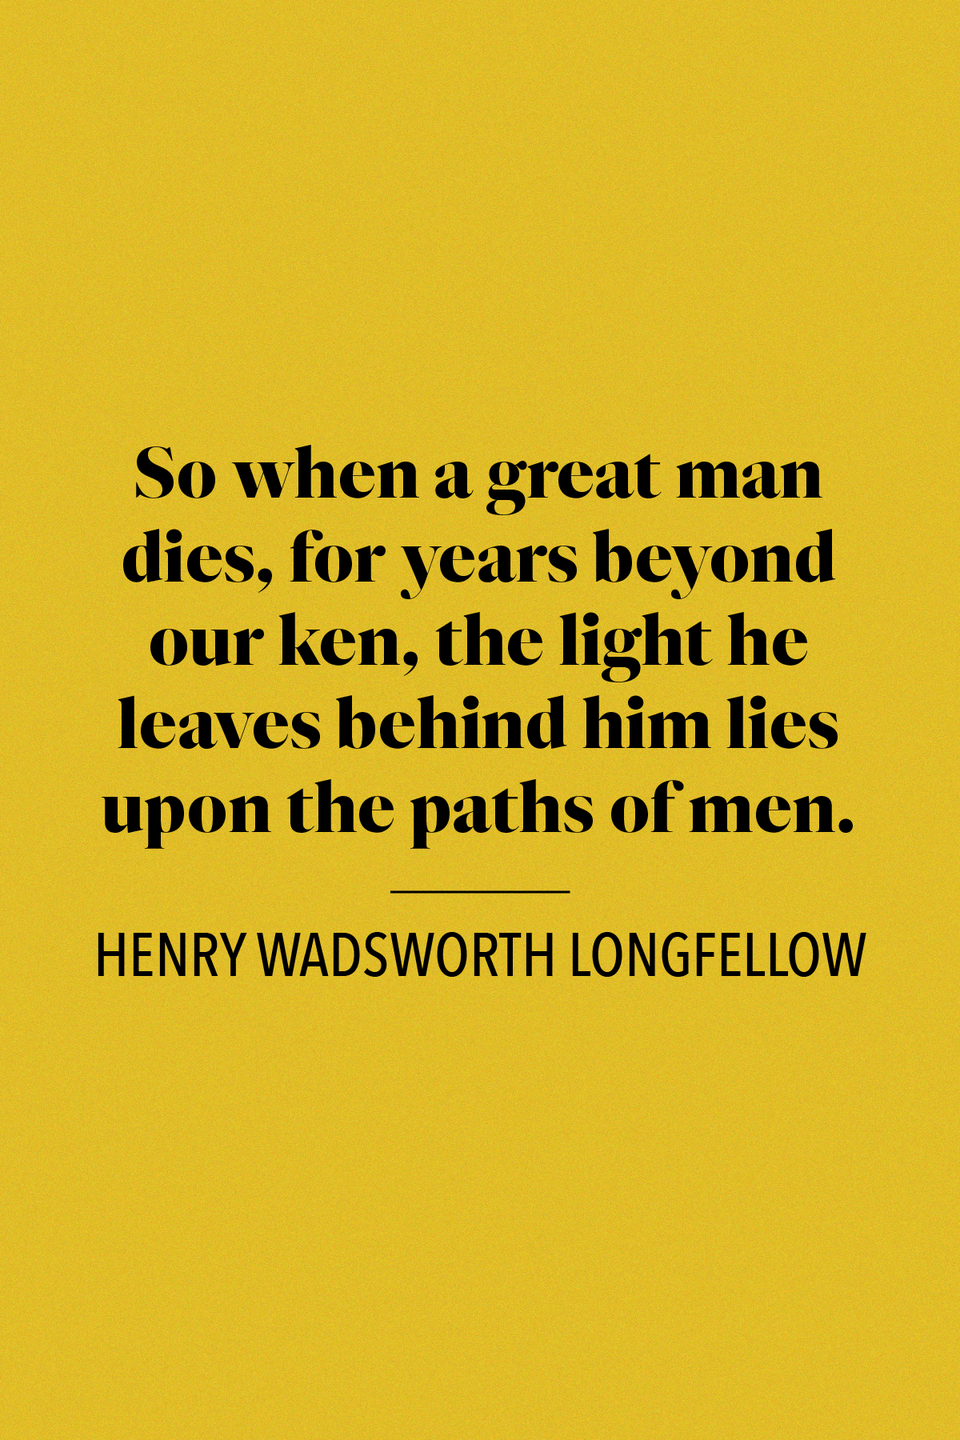 "<p>Henry Wadsworth Longfellow, a popular poet in the 19th century, wrote in his poem ""<a href=""https://www.hwlongfellow.org/poems_poem.php?pid=228"" rel=""nofollow noopener"" target=""_blank"" data-ylk=""slk:Charles Summer"" class=""link rapid-noclick-resp"">Charles Summer</a>:"" ""So when a great man dies, / For years beyond our ken, / The light he leaves behind him lies / Upon the paths of men.""</p>"